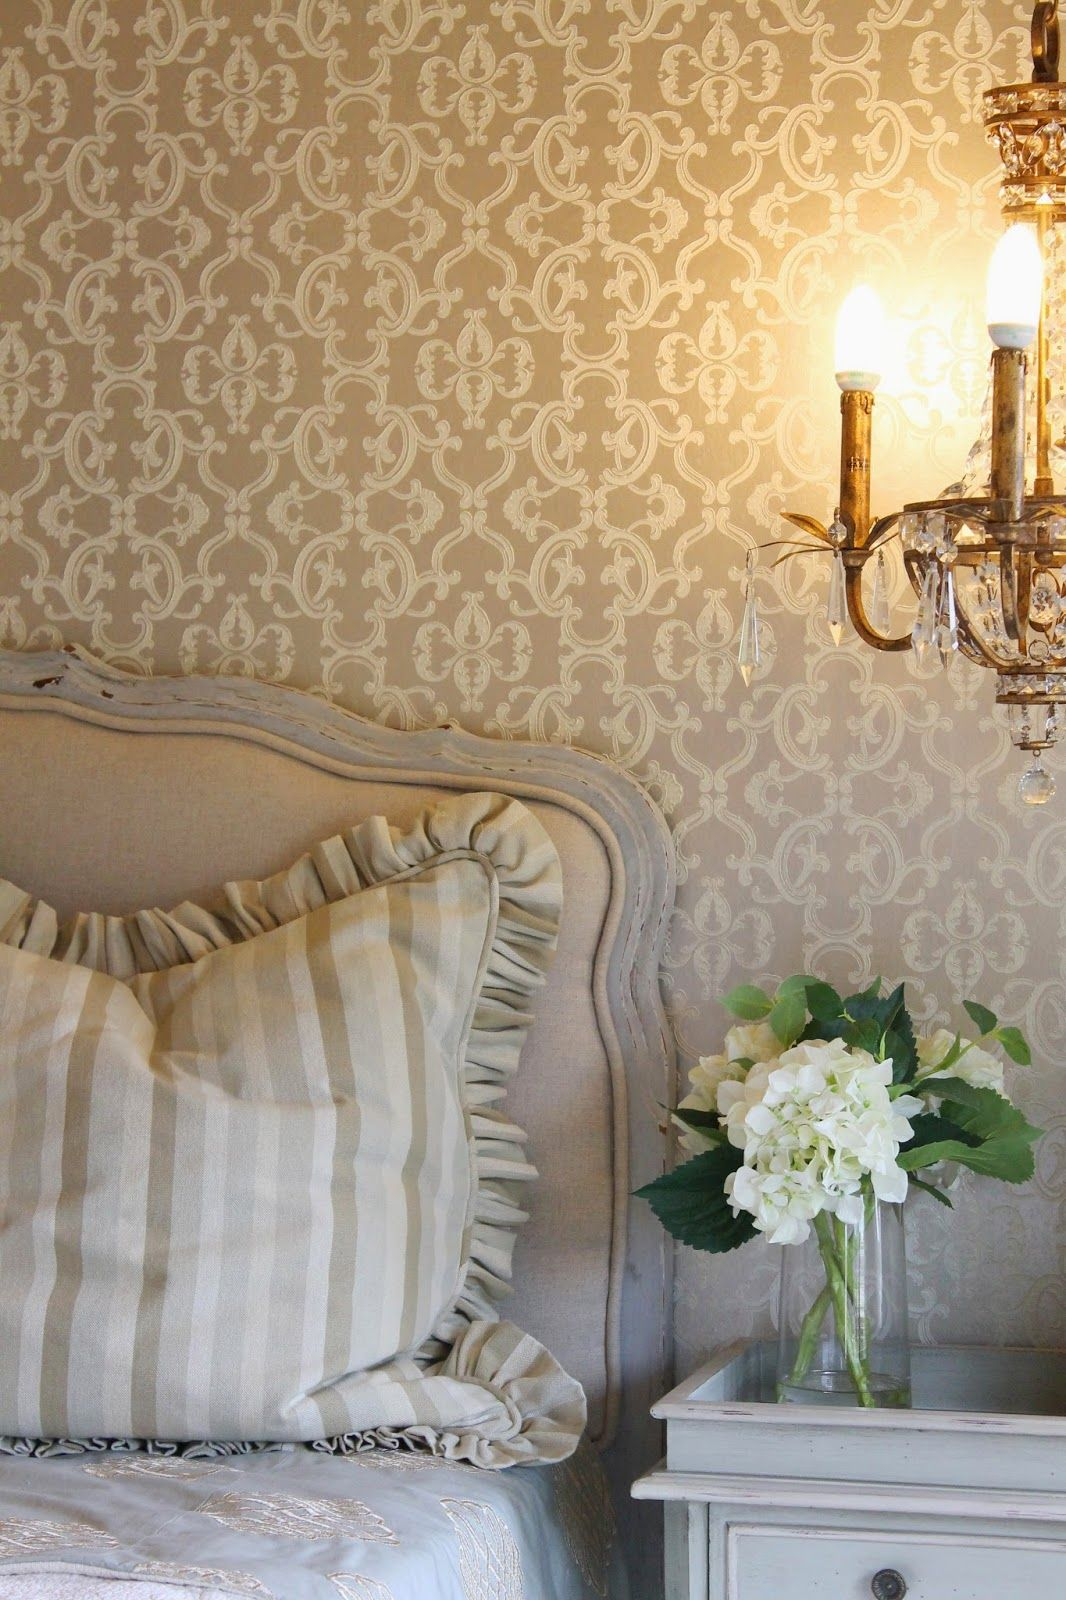 Love The Metallic Wallpaper Knock It Off With Paint And A Stencil Lots Of Glass Warm Textures Mixed Metals Simple Patterns See How To Pull